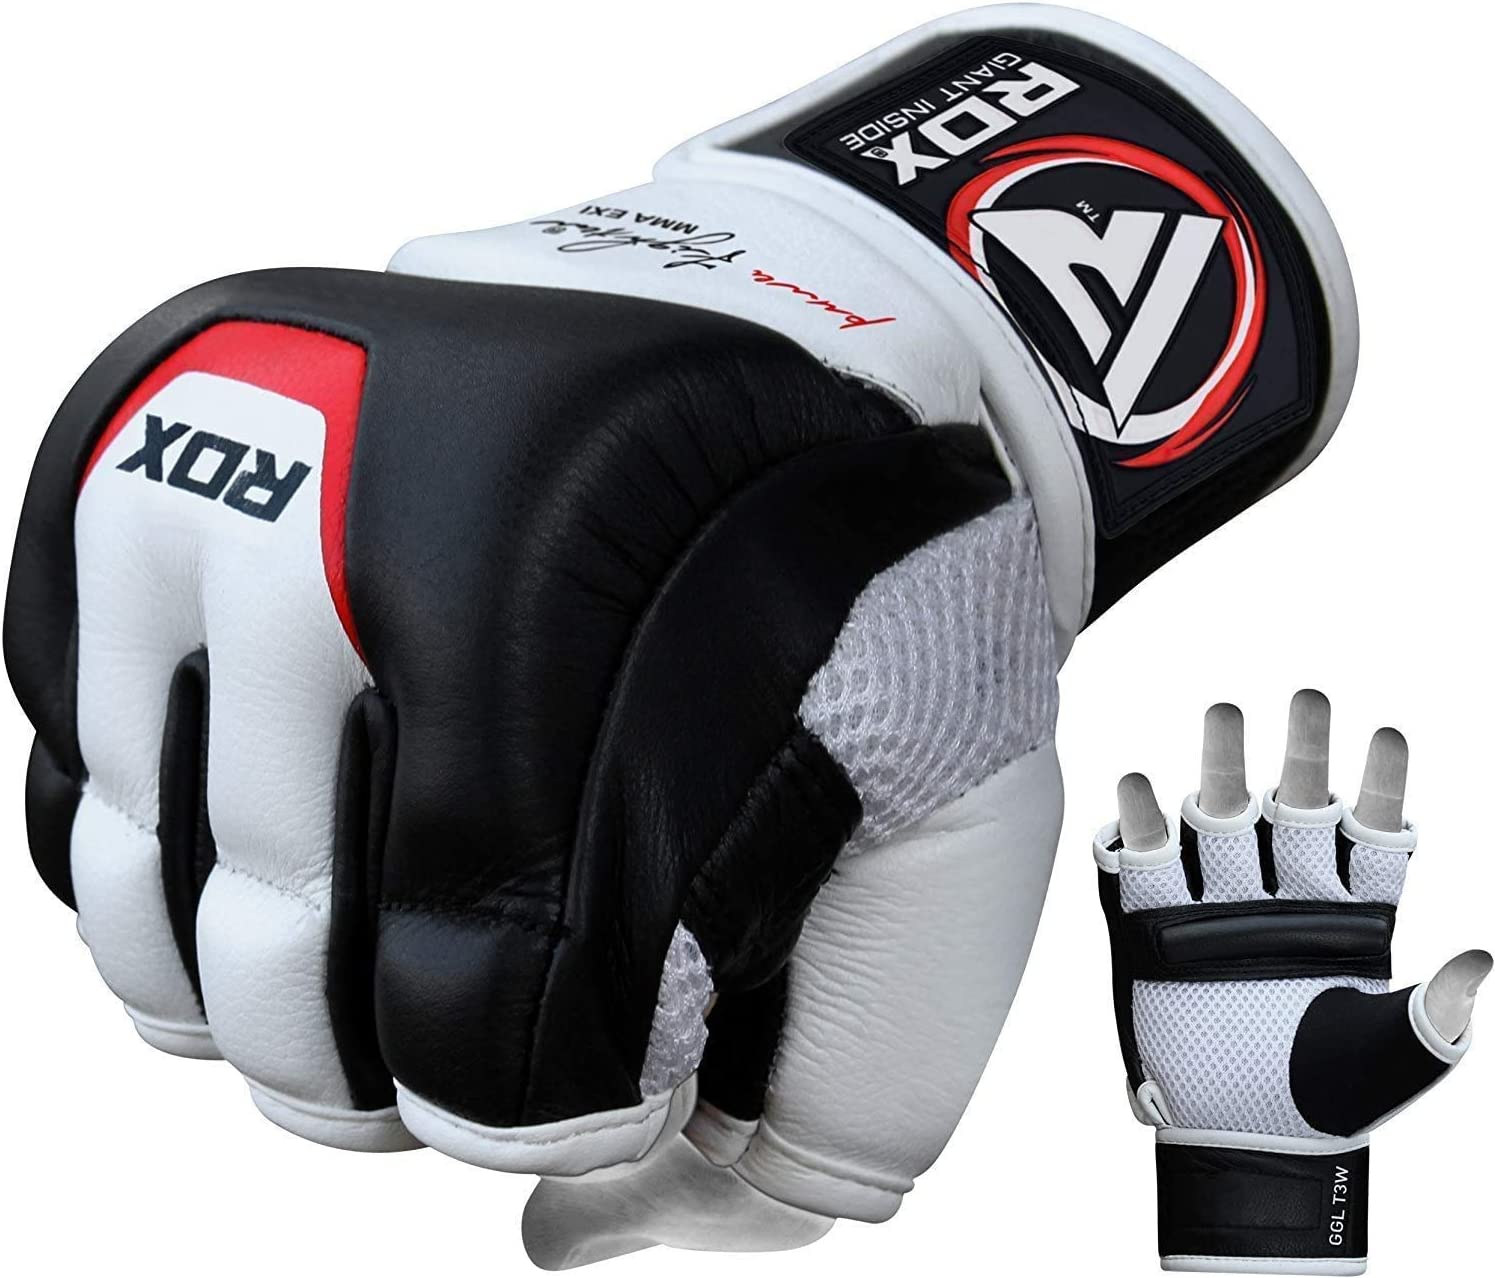 RDX MMA New Free Shipping Gloves for Martial Arts Training Cowhide Popular products L Sparring and